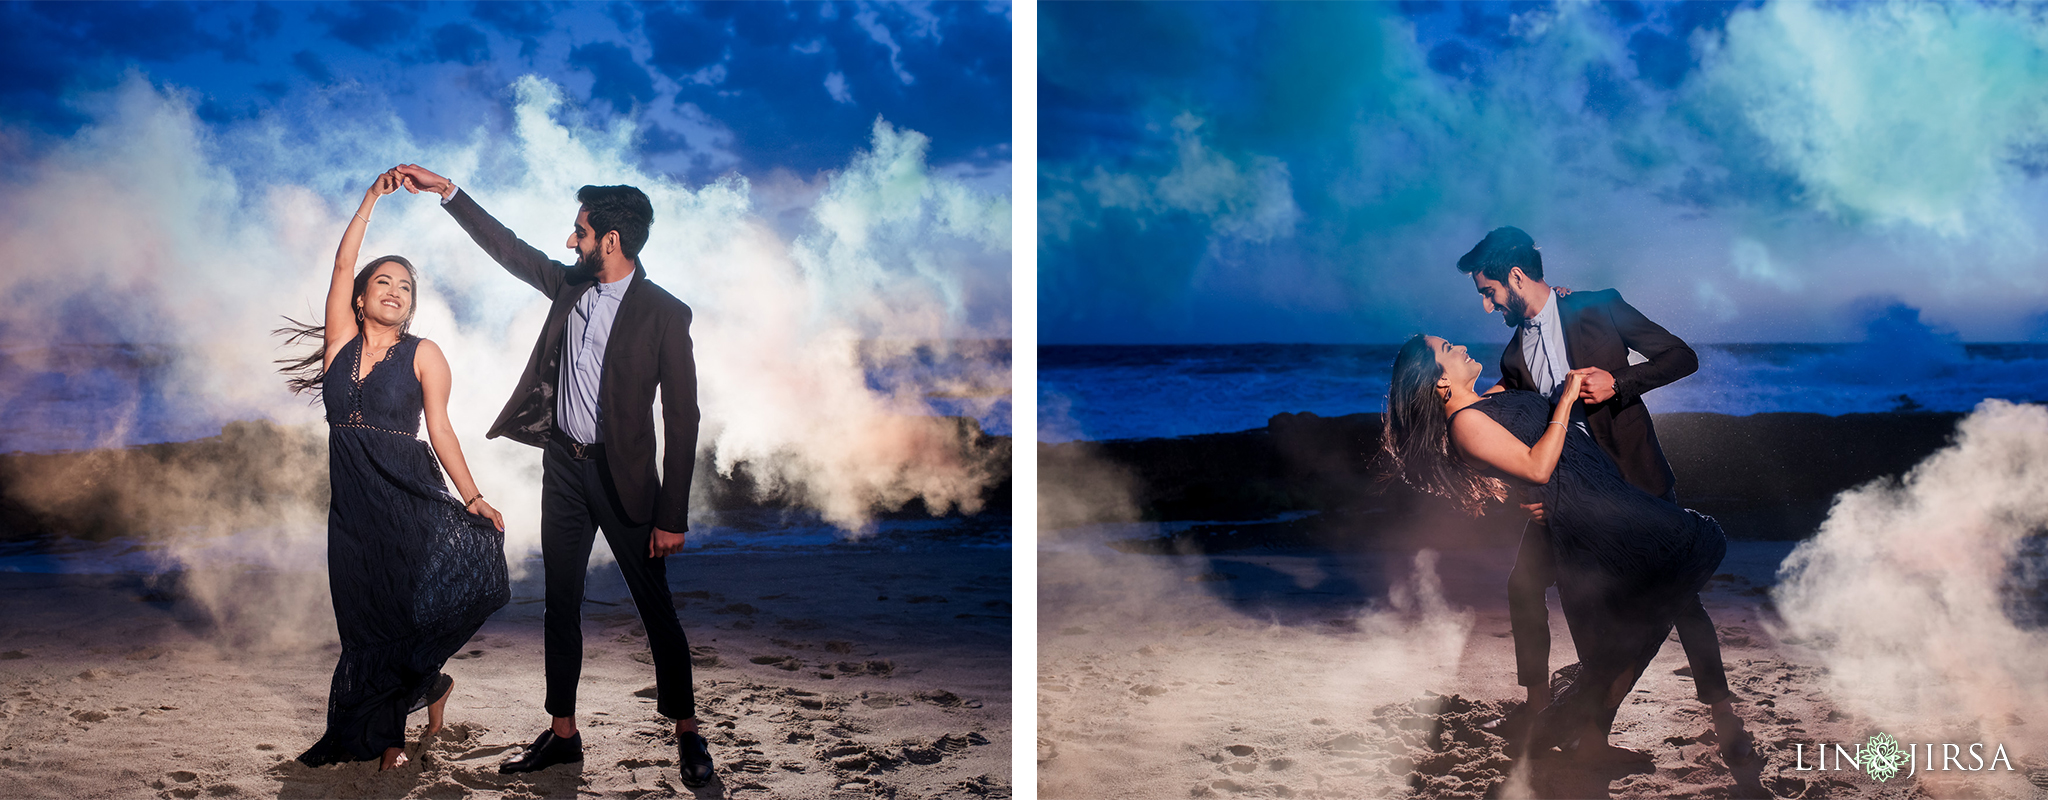 11 Victoria Beach Smoke Engagement Photography